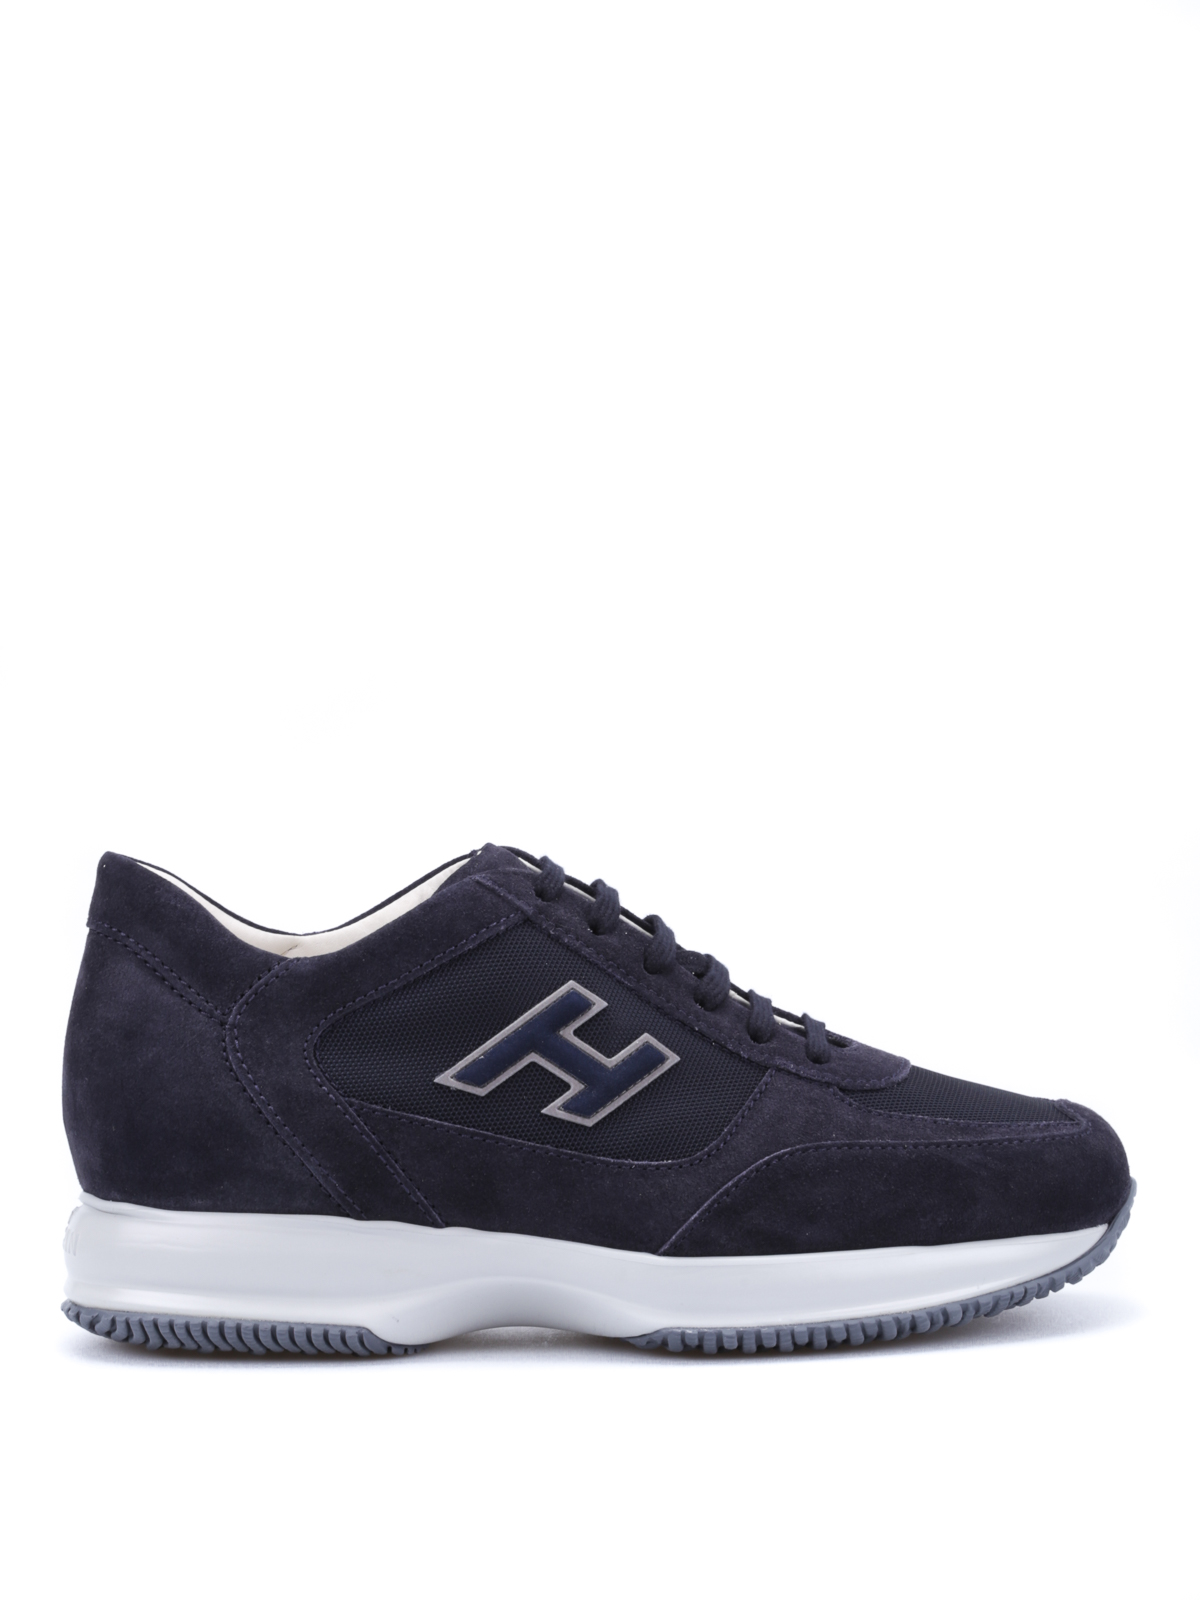 36d564ea769db Hogan - New Interactive All H Flock - trainers - HXM00N03242R2Y 9999